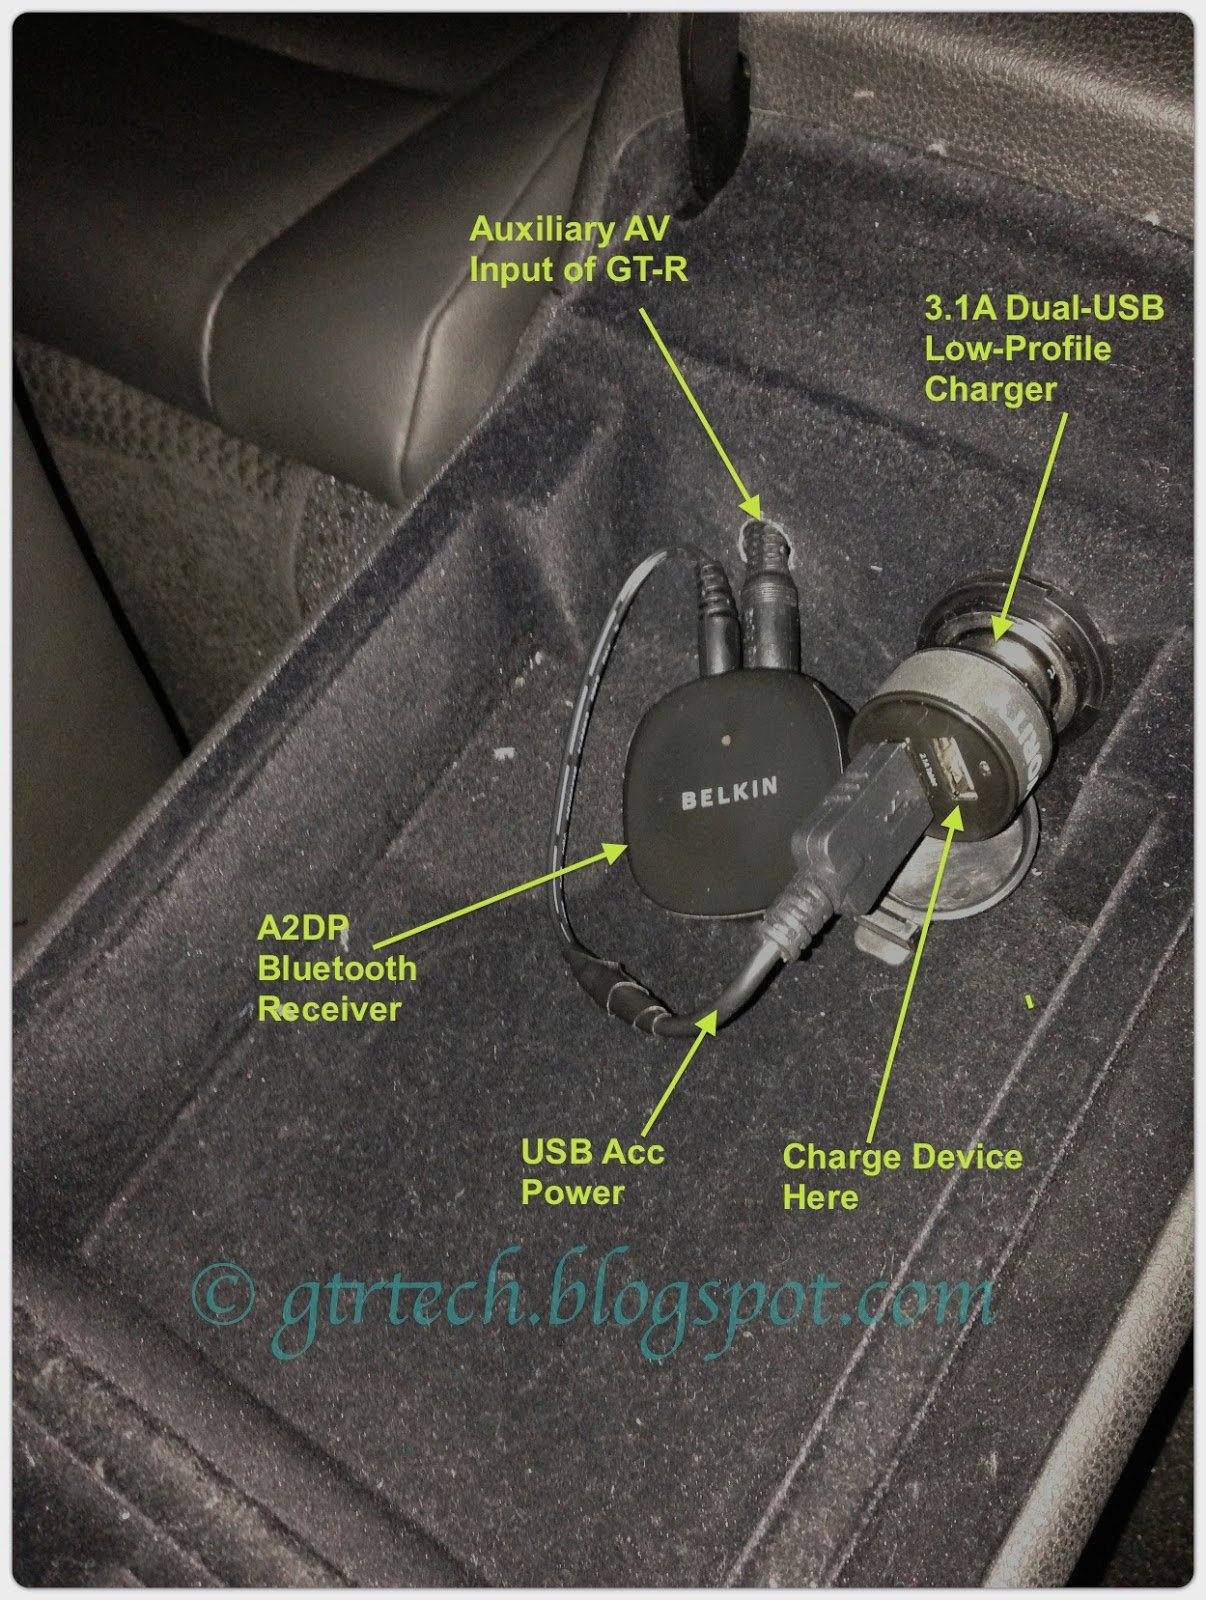 Nissan Gt R R35 Technical Diy Blog Adding Bluetooth A2dp Wiring Usb Harness Connection The Next Step Is Researching And Installing An Interface That Performs Both Avrcp So I Can Not Only Control Audio But Also Display